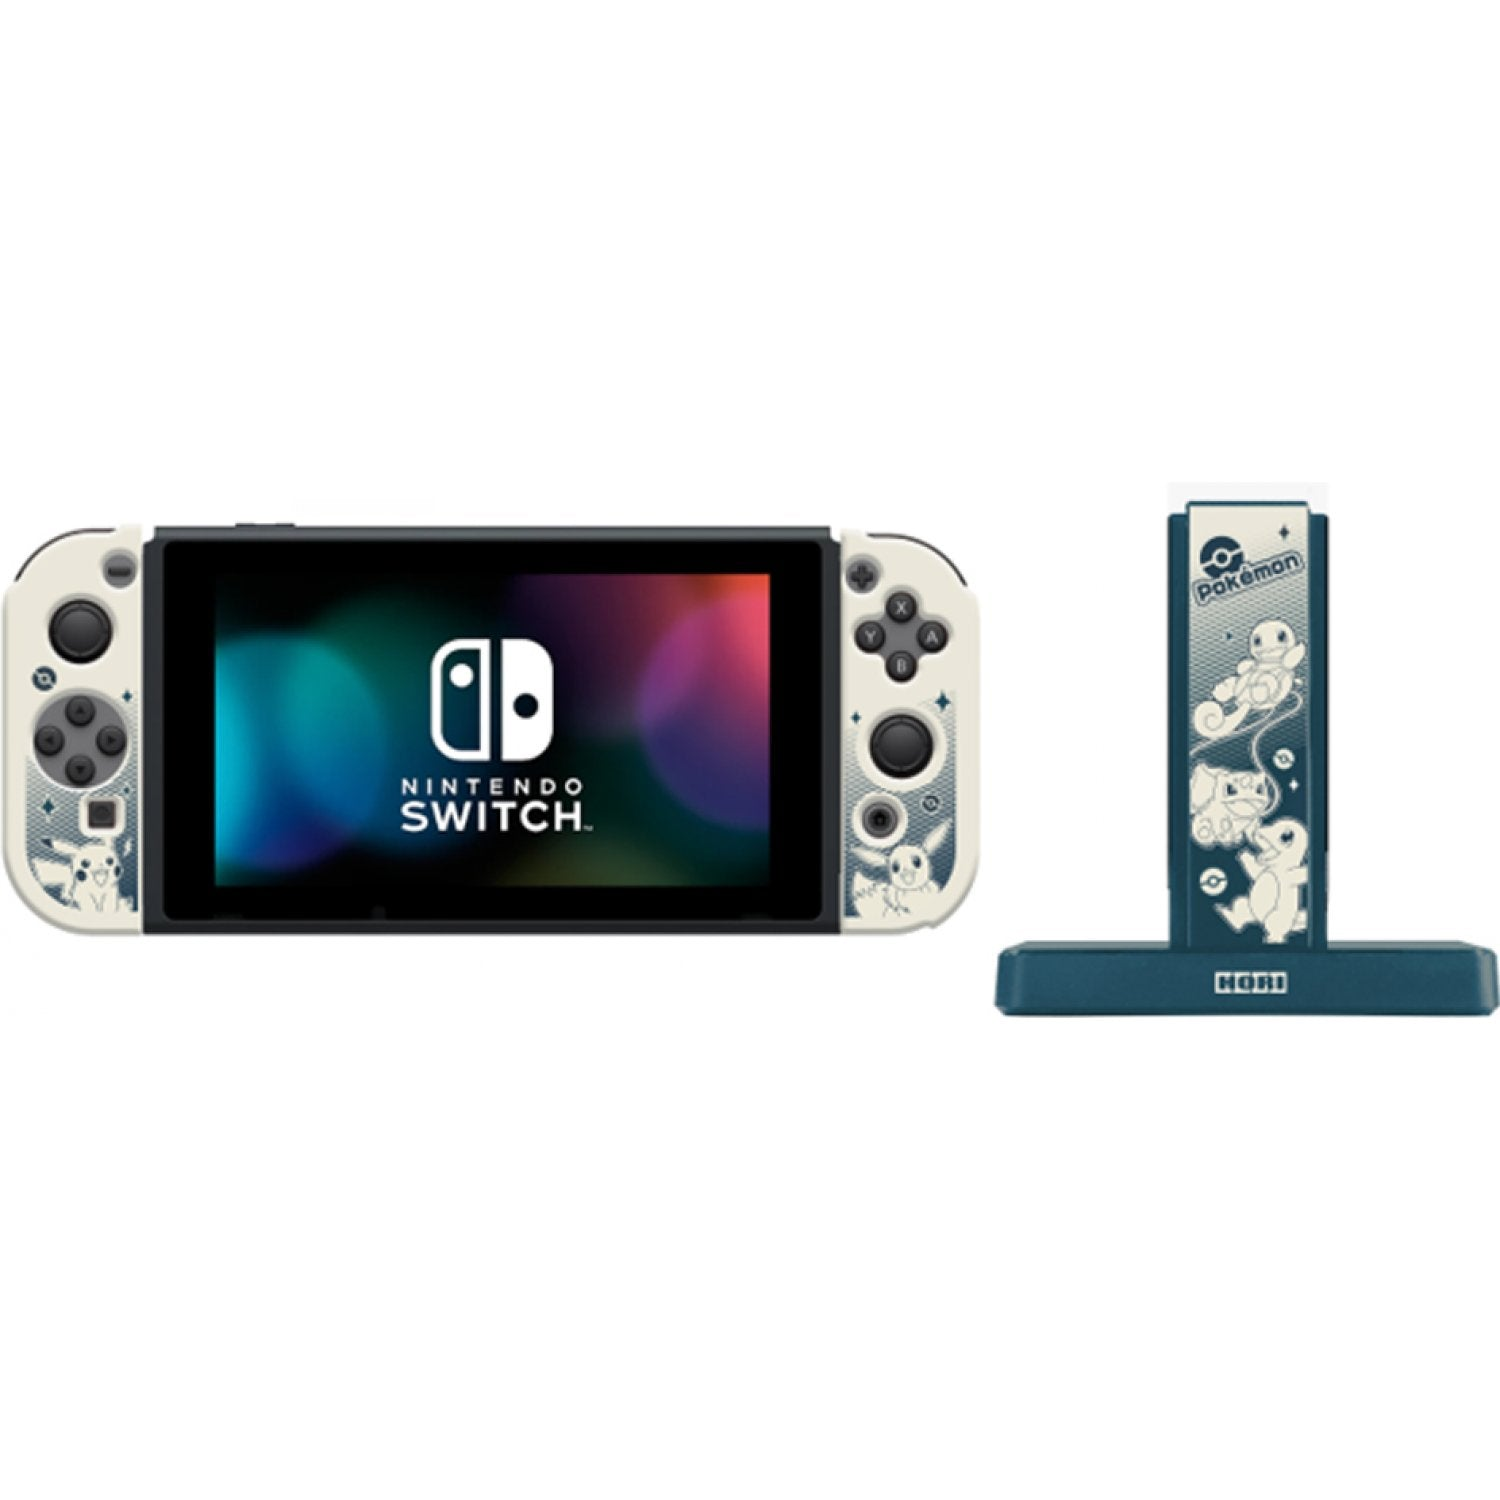 HORI Joy-Con Charging Stand + PC Cover for Nintendo Switch (AD13-001A)